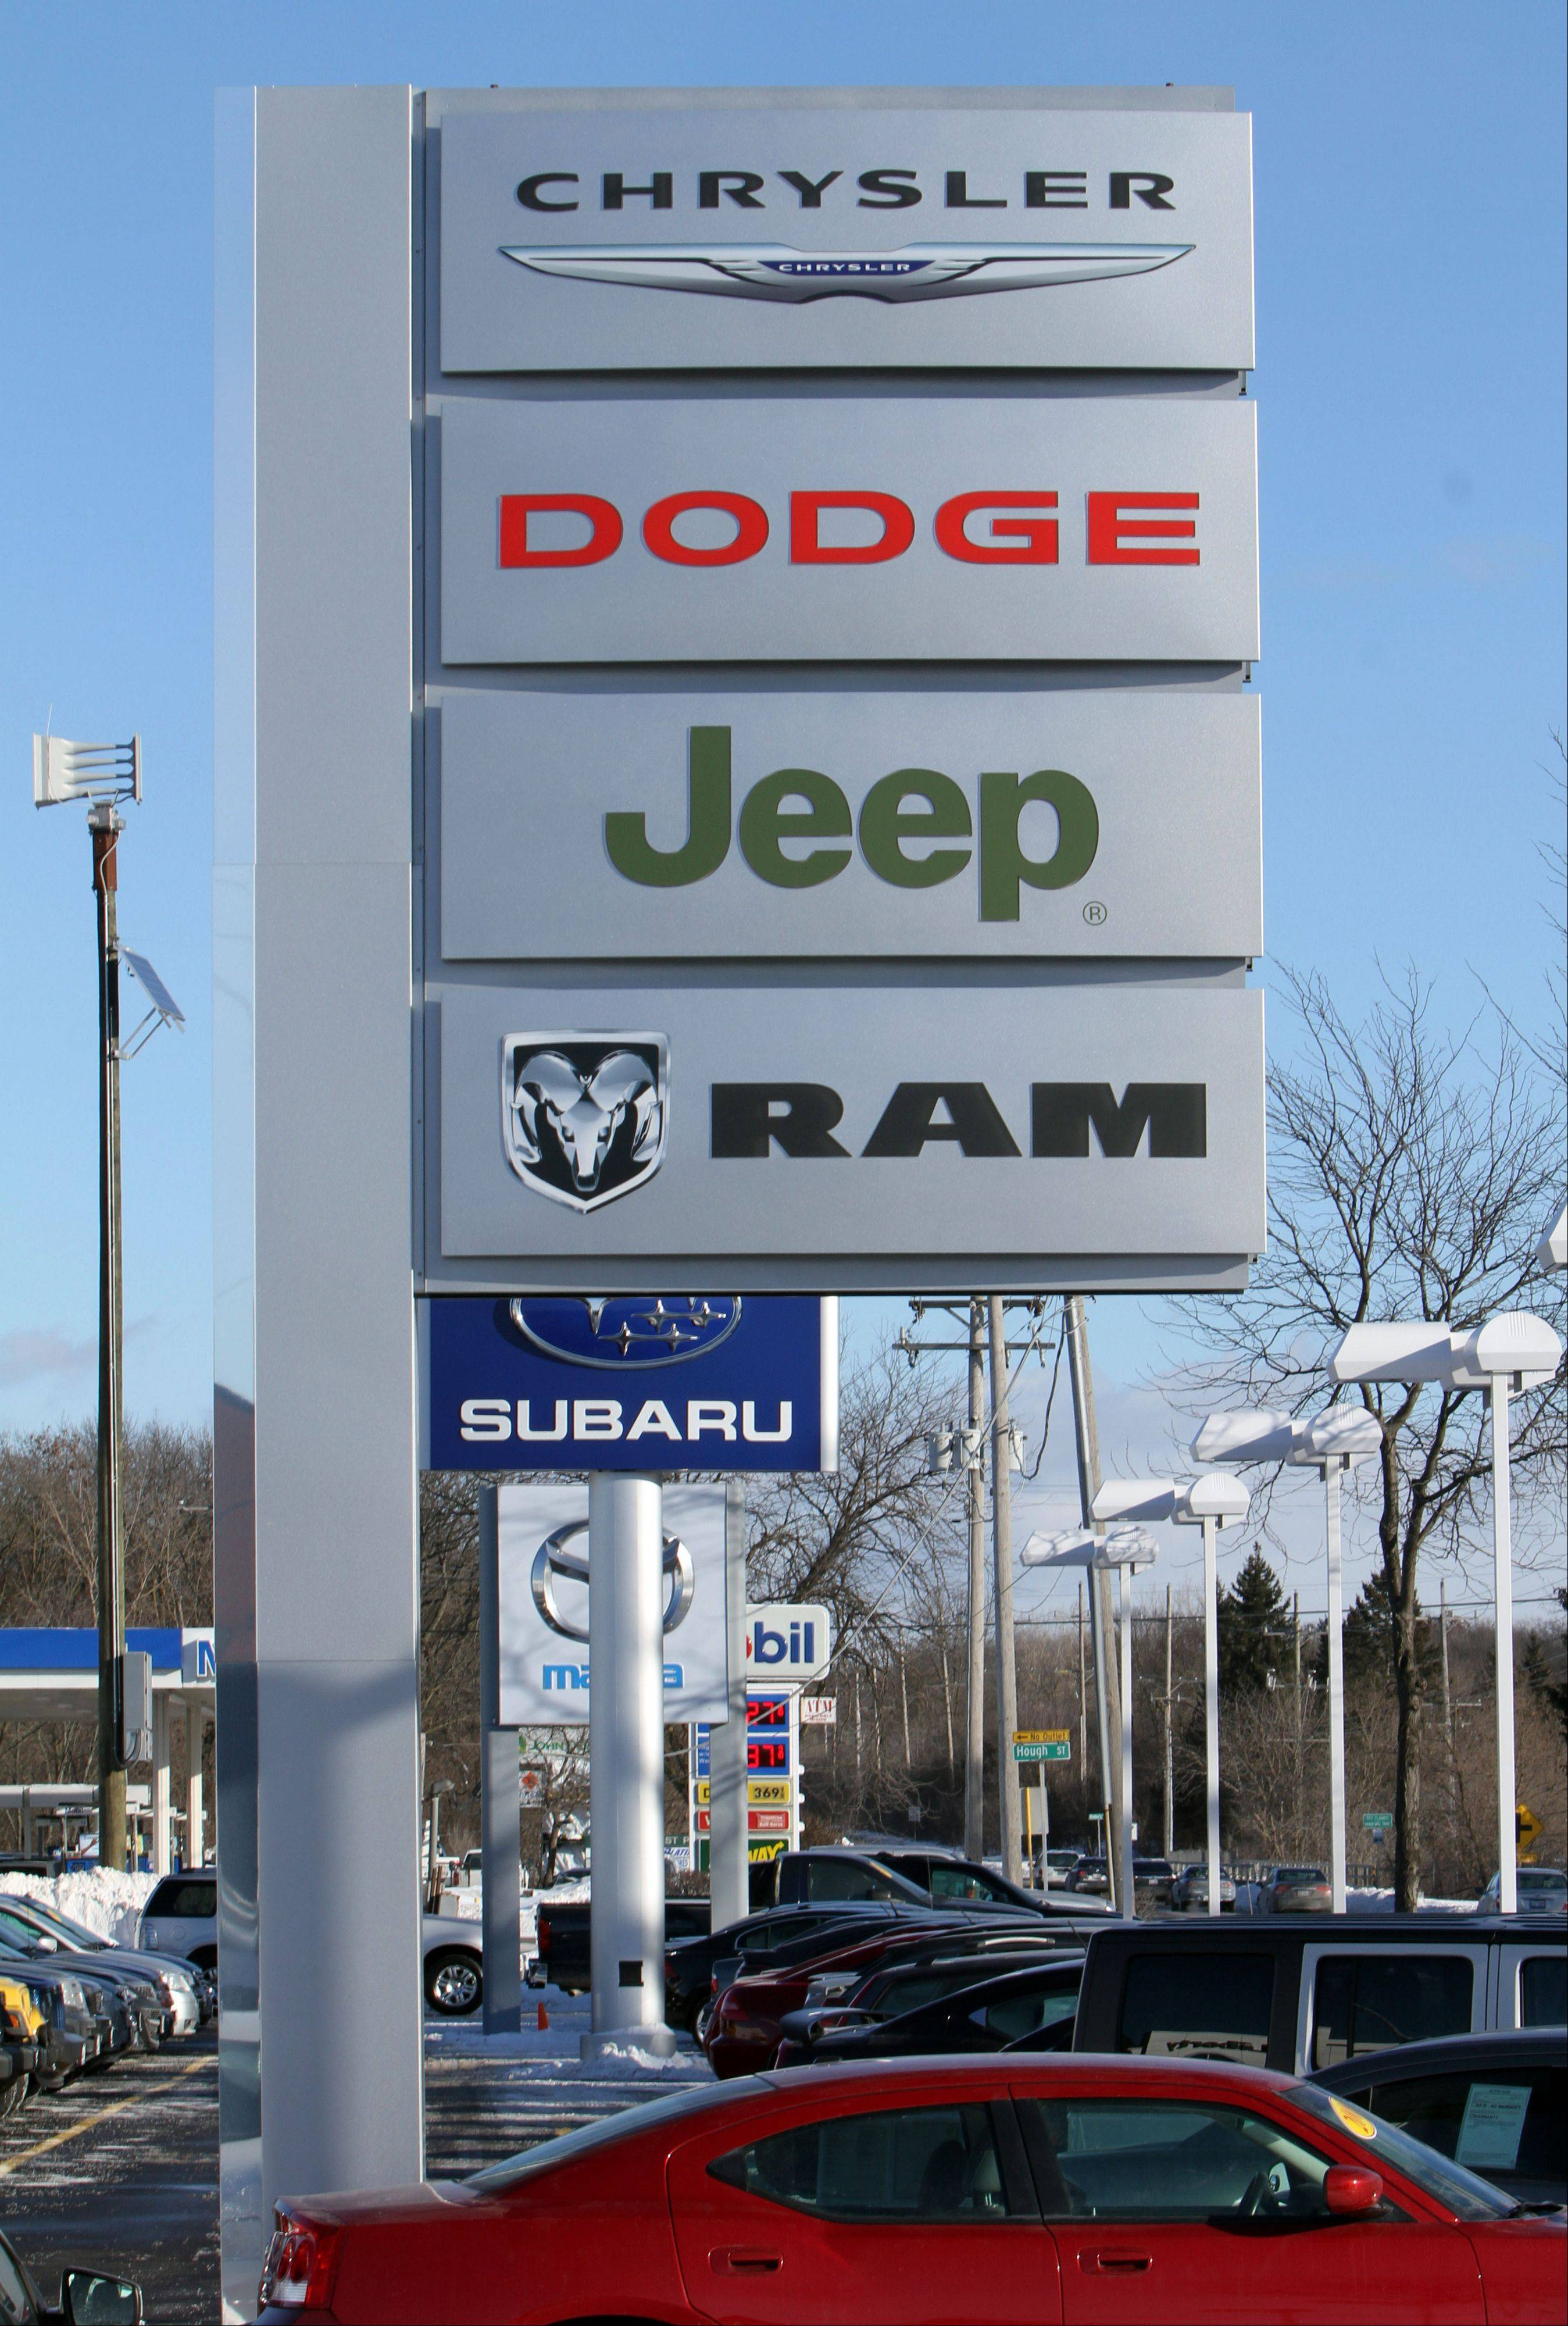 Liberty Auto City carries new Chrysler, Dodge, Jeep, Tam Truck, Subaru and Mazda vehicles.